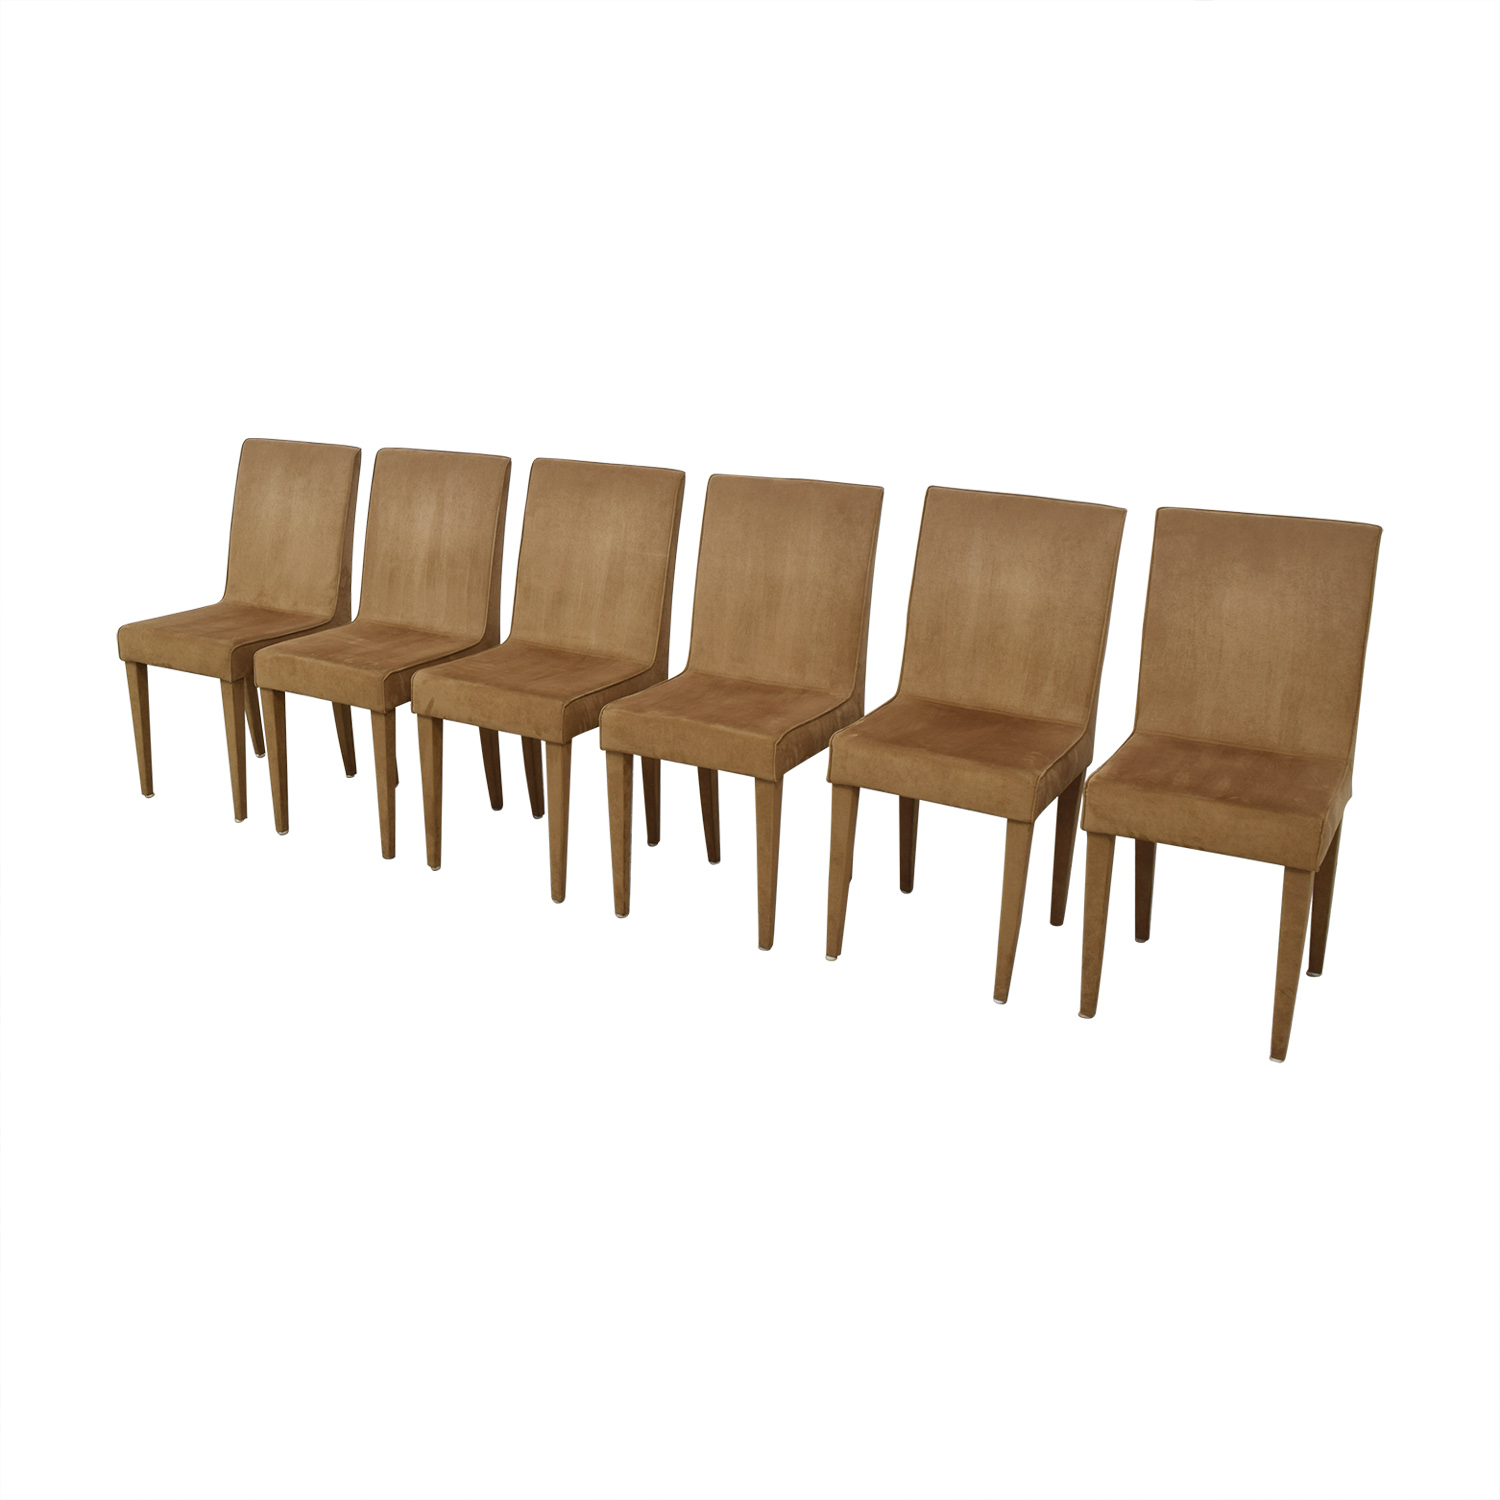 DDC Classic Dining Chairs / Chairs